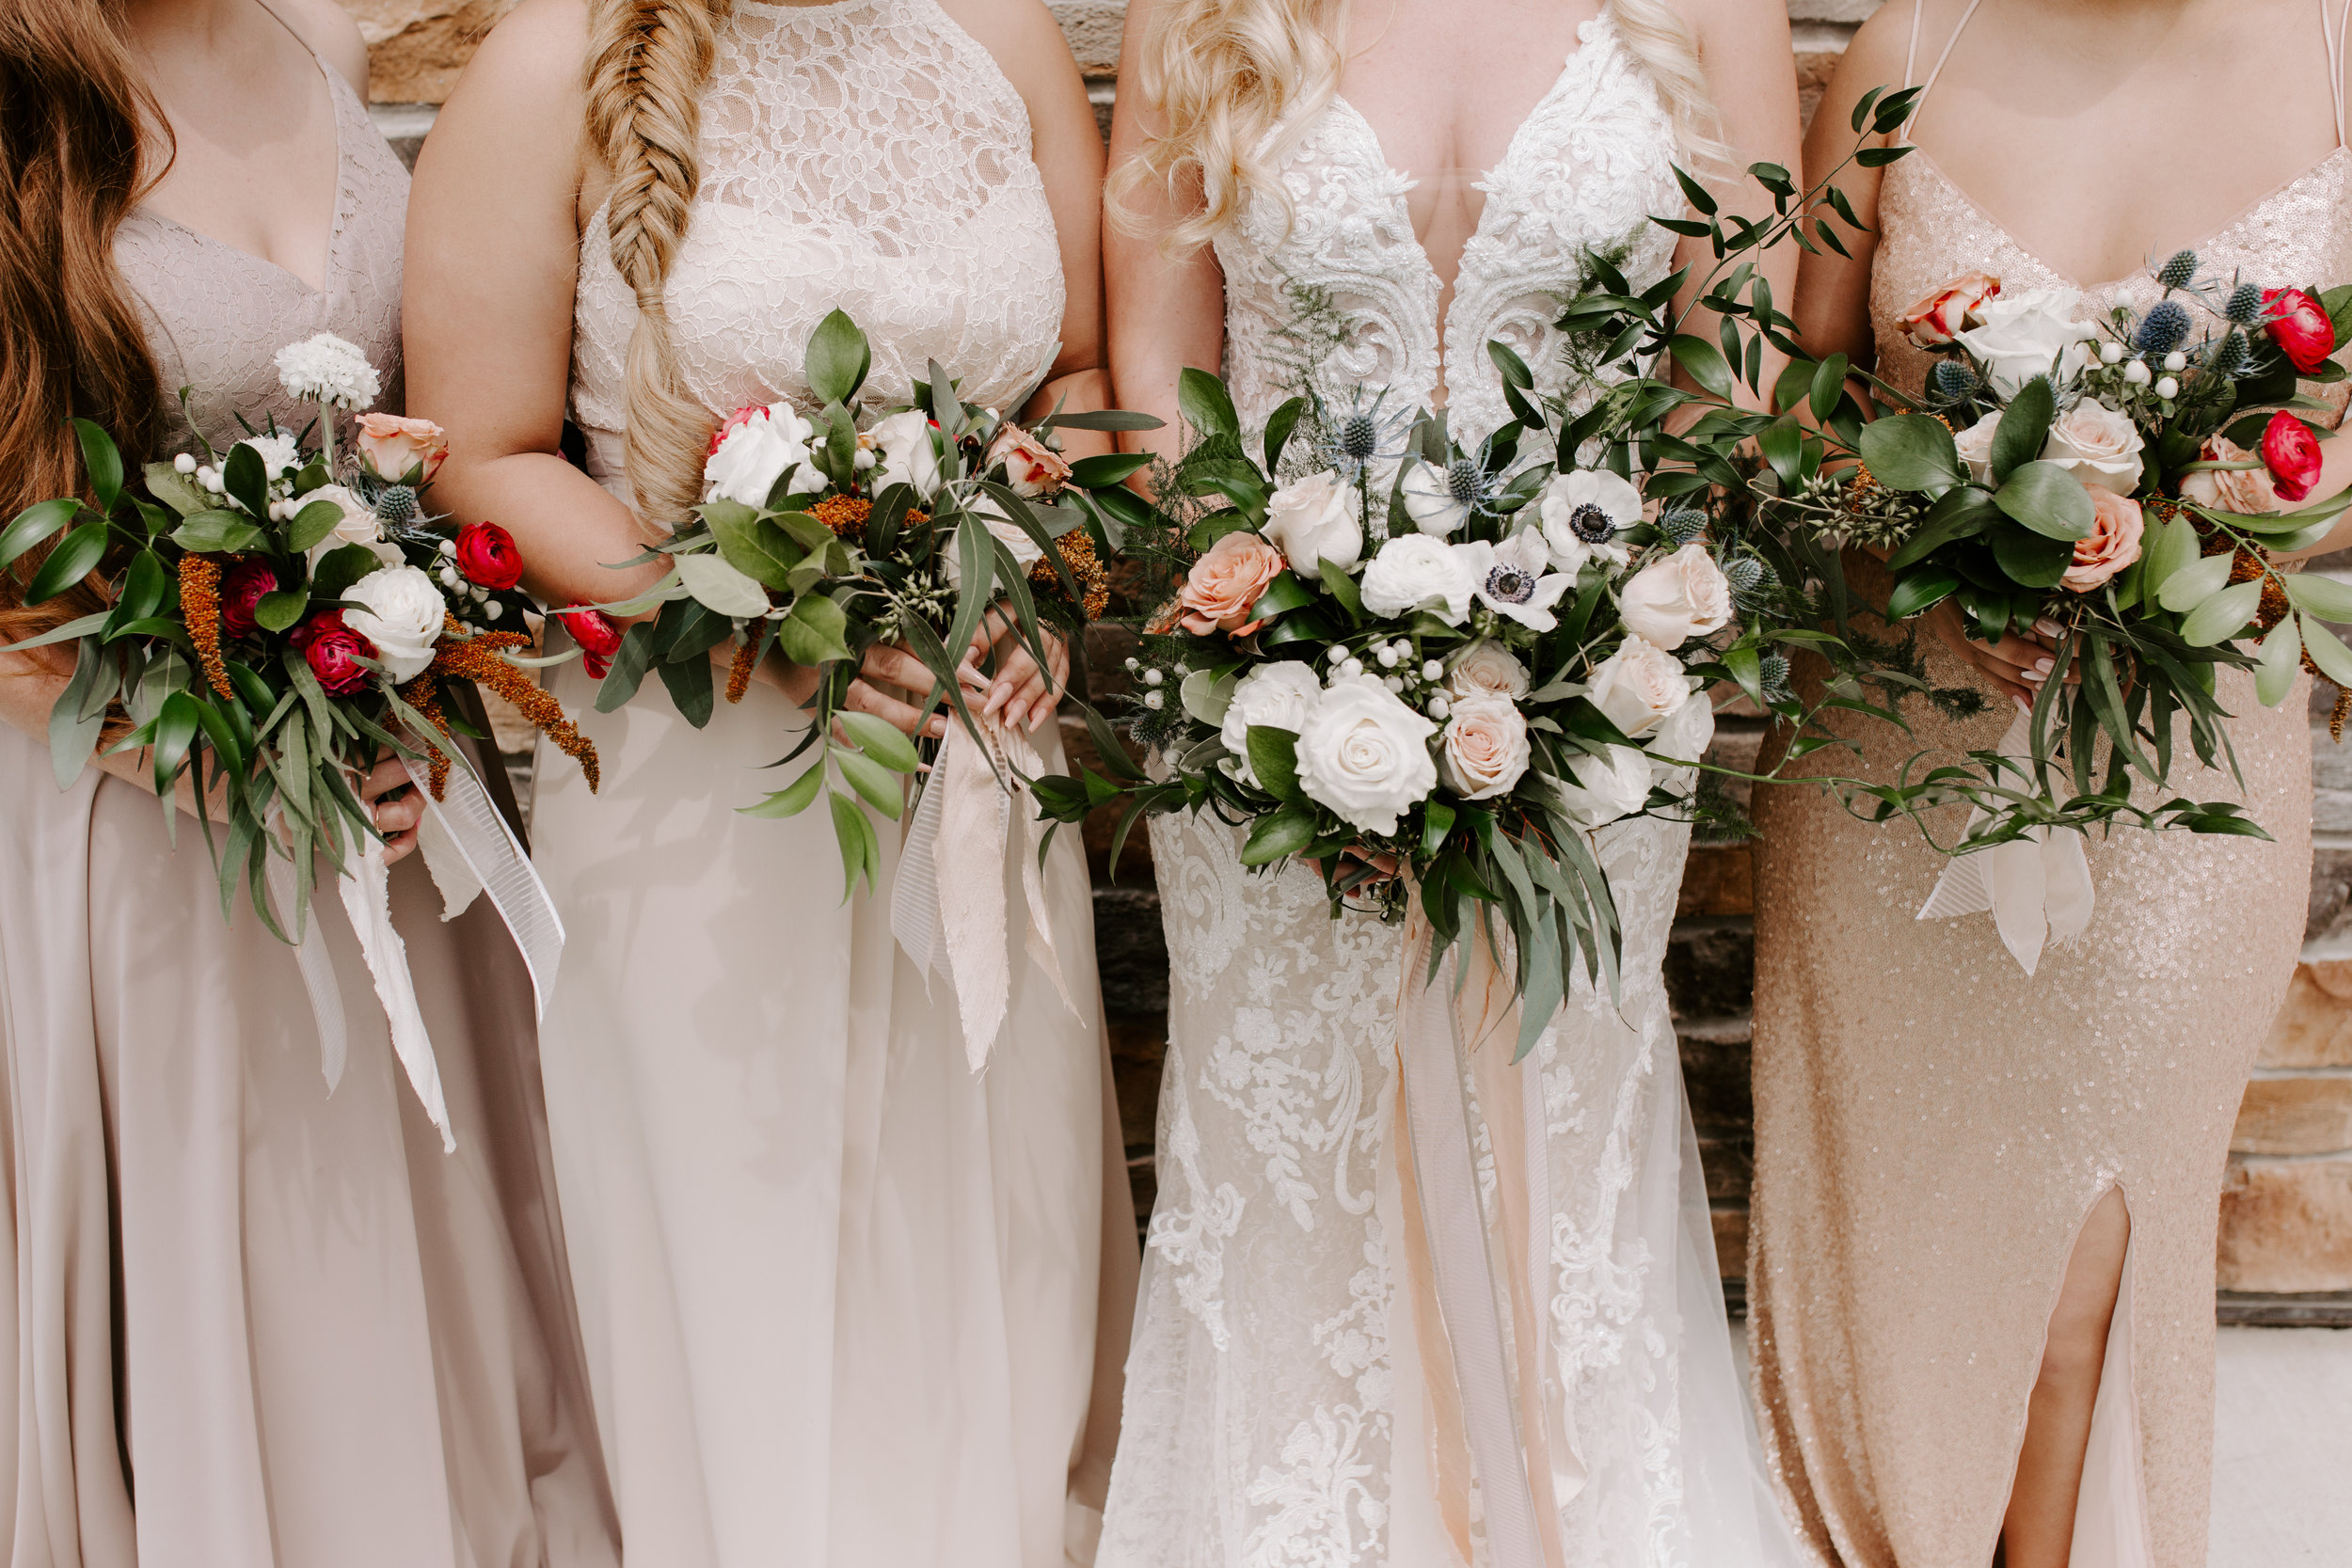 Bridesmaid in blush and cream and gold dresses from Weddings by Design in Iowa, holding flowers from Lavender Blue with white and cream roses